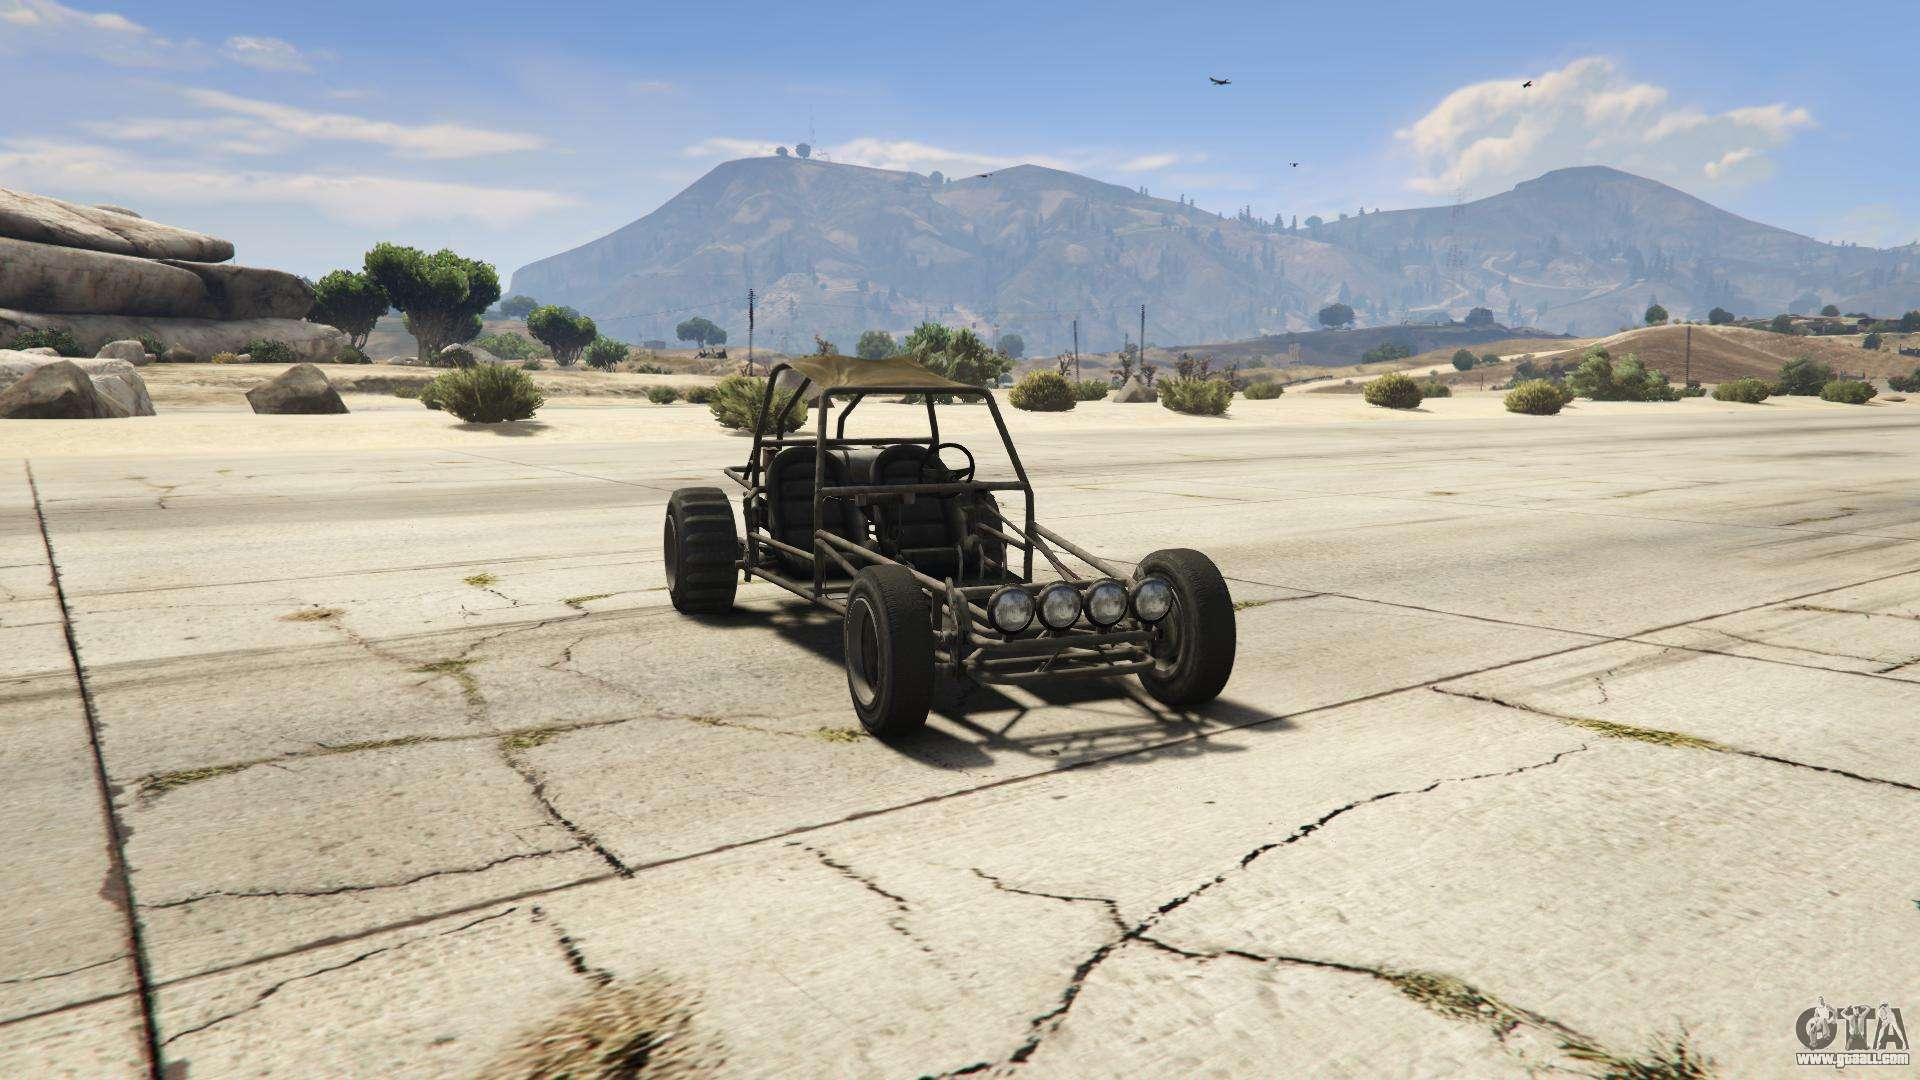 GTA 5 BF Dune Buggy - front view